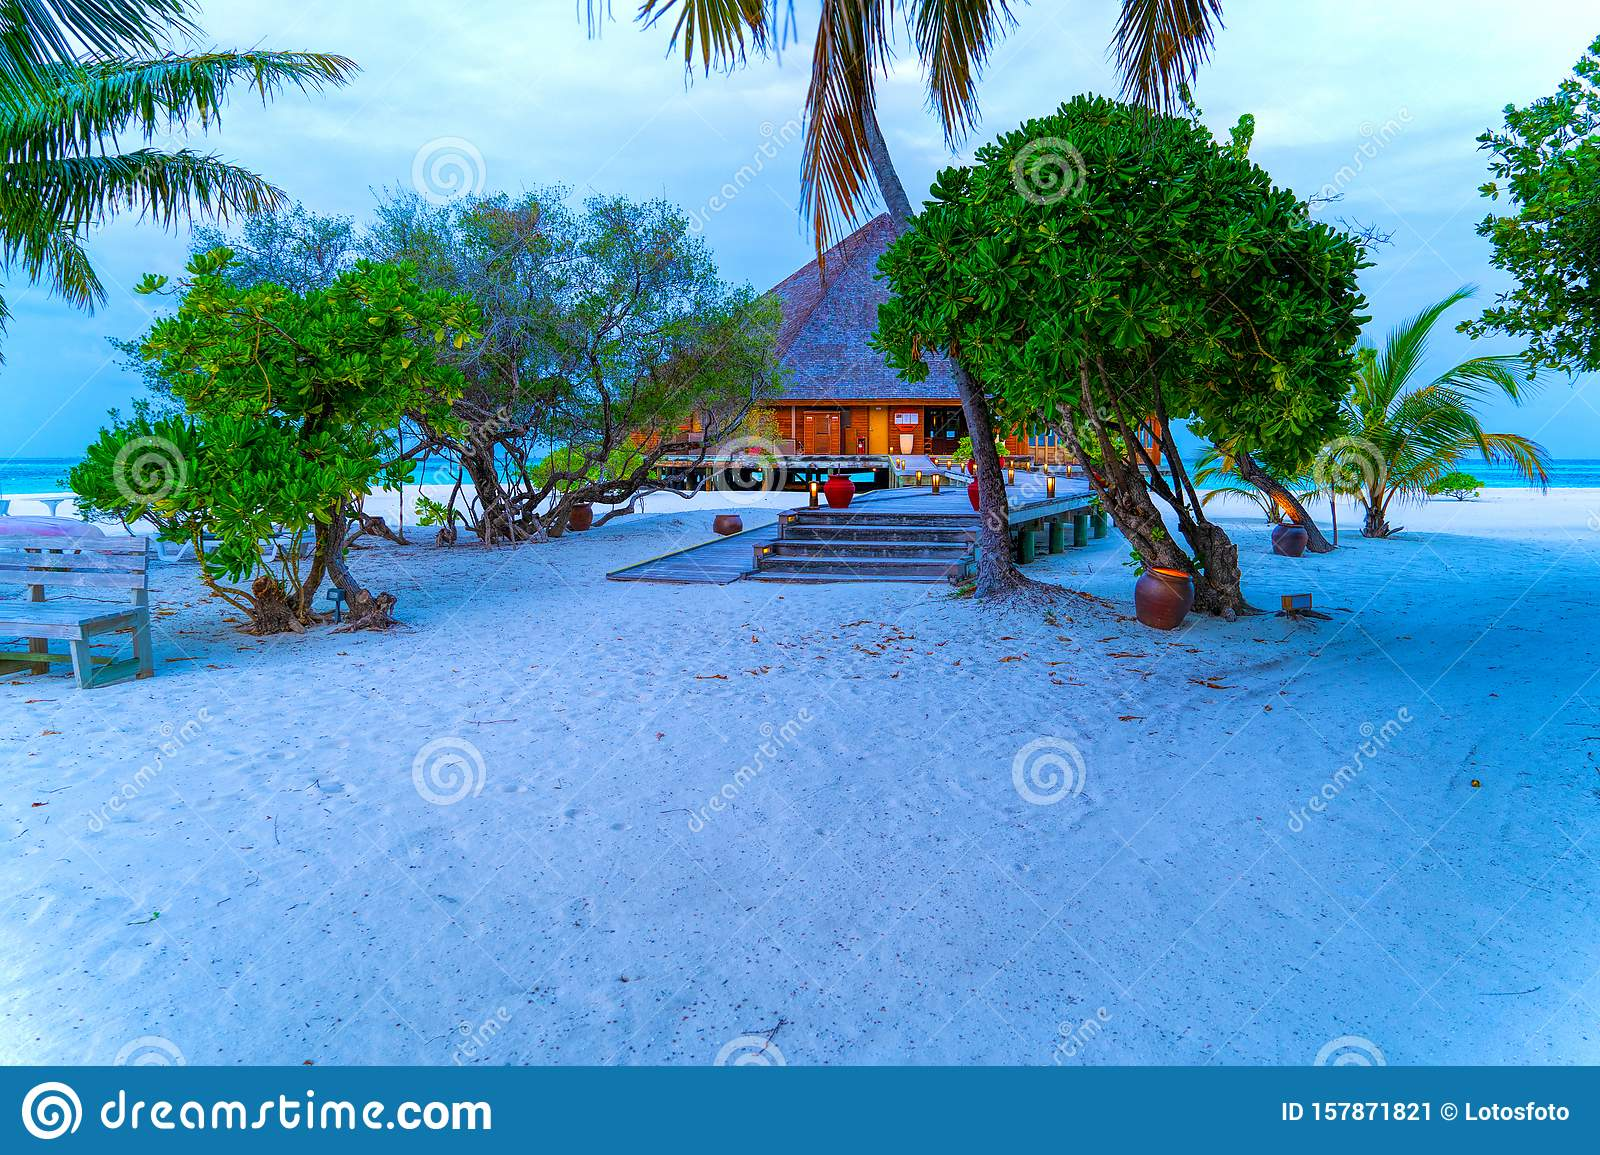 Tropical Bungalow On The Amazing Beach With A Palm Tree Stock Image Image Of Hotel Outdoors 157871821